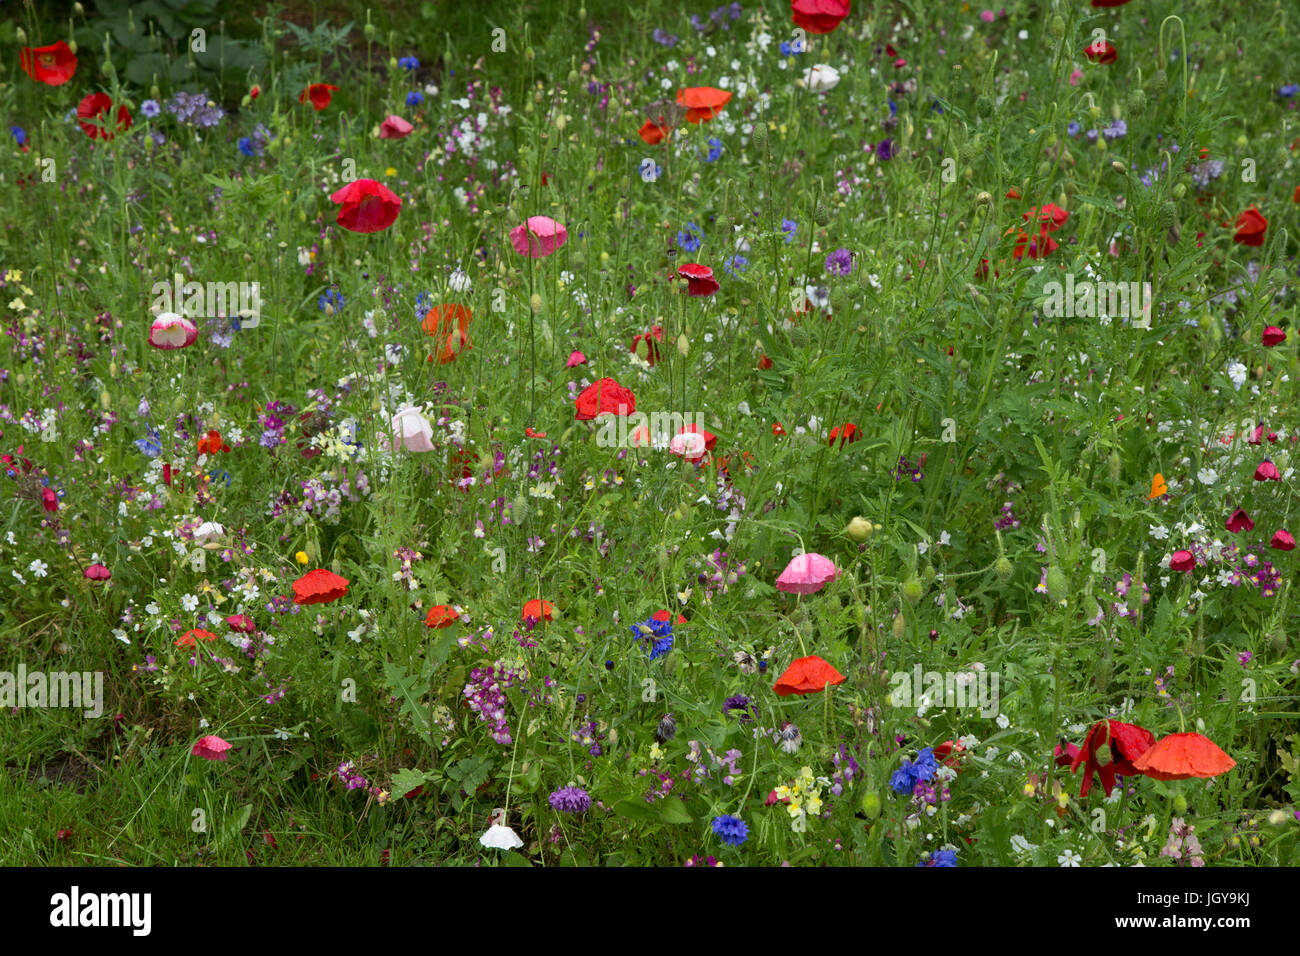 English wild flower garden - Stock Image